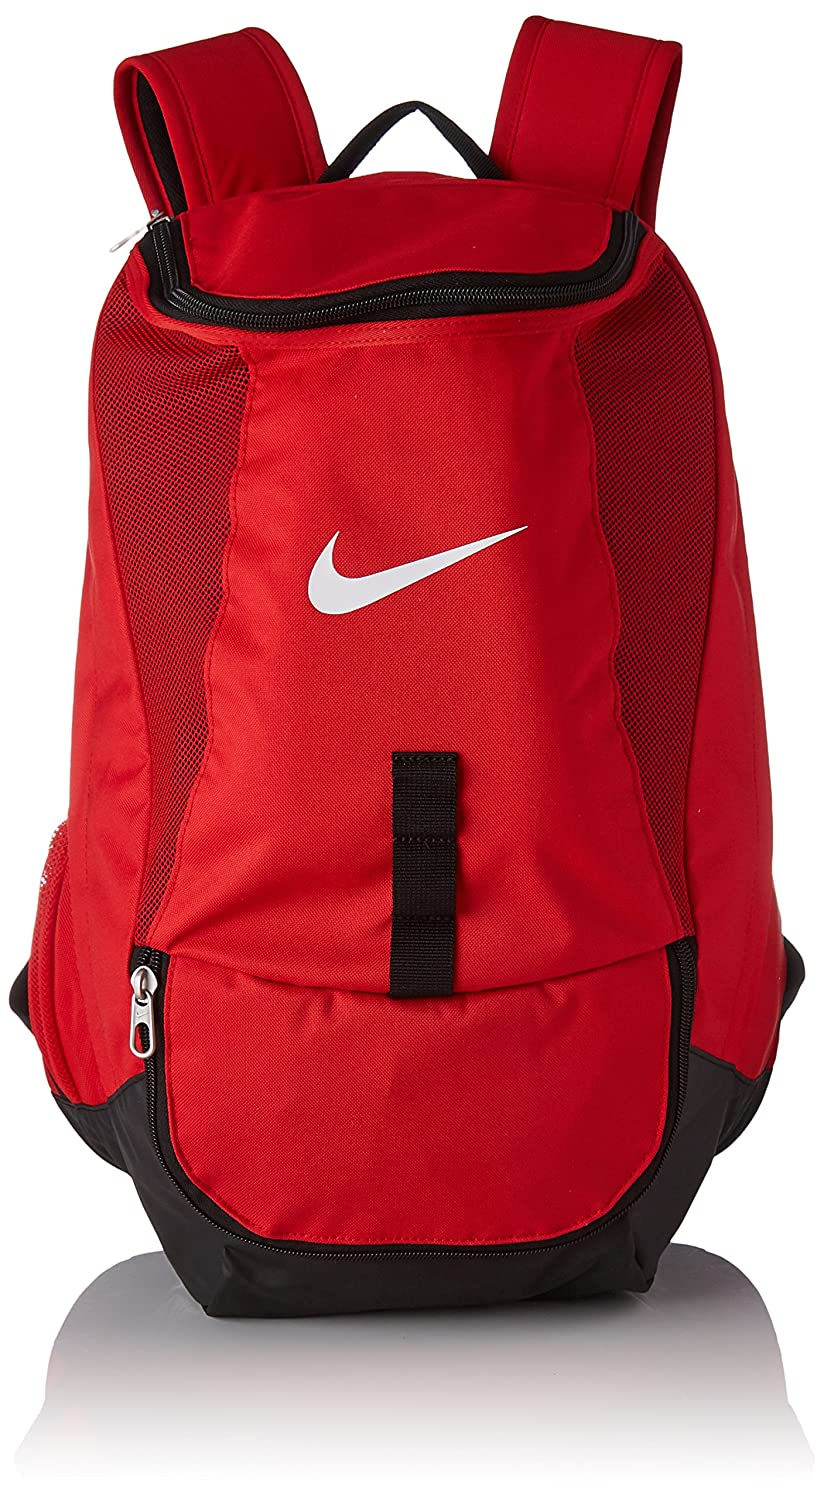 075d9298ca Nike Club Team Backpack Swoosh Taille Unique Bleu Marine/Noir/Blanc:  Amazon.fr: Sports et Loisirs